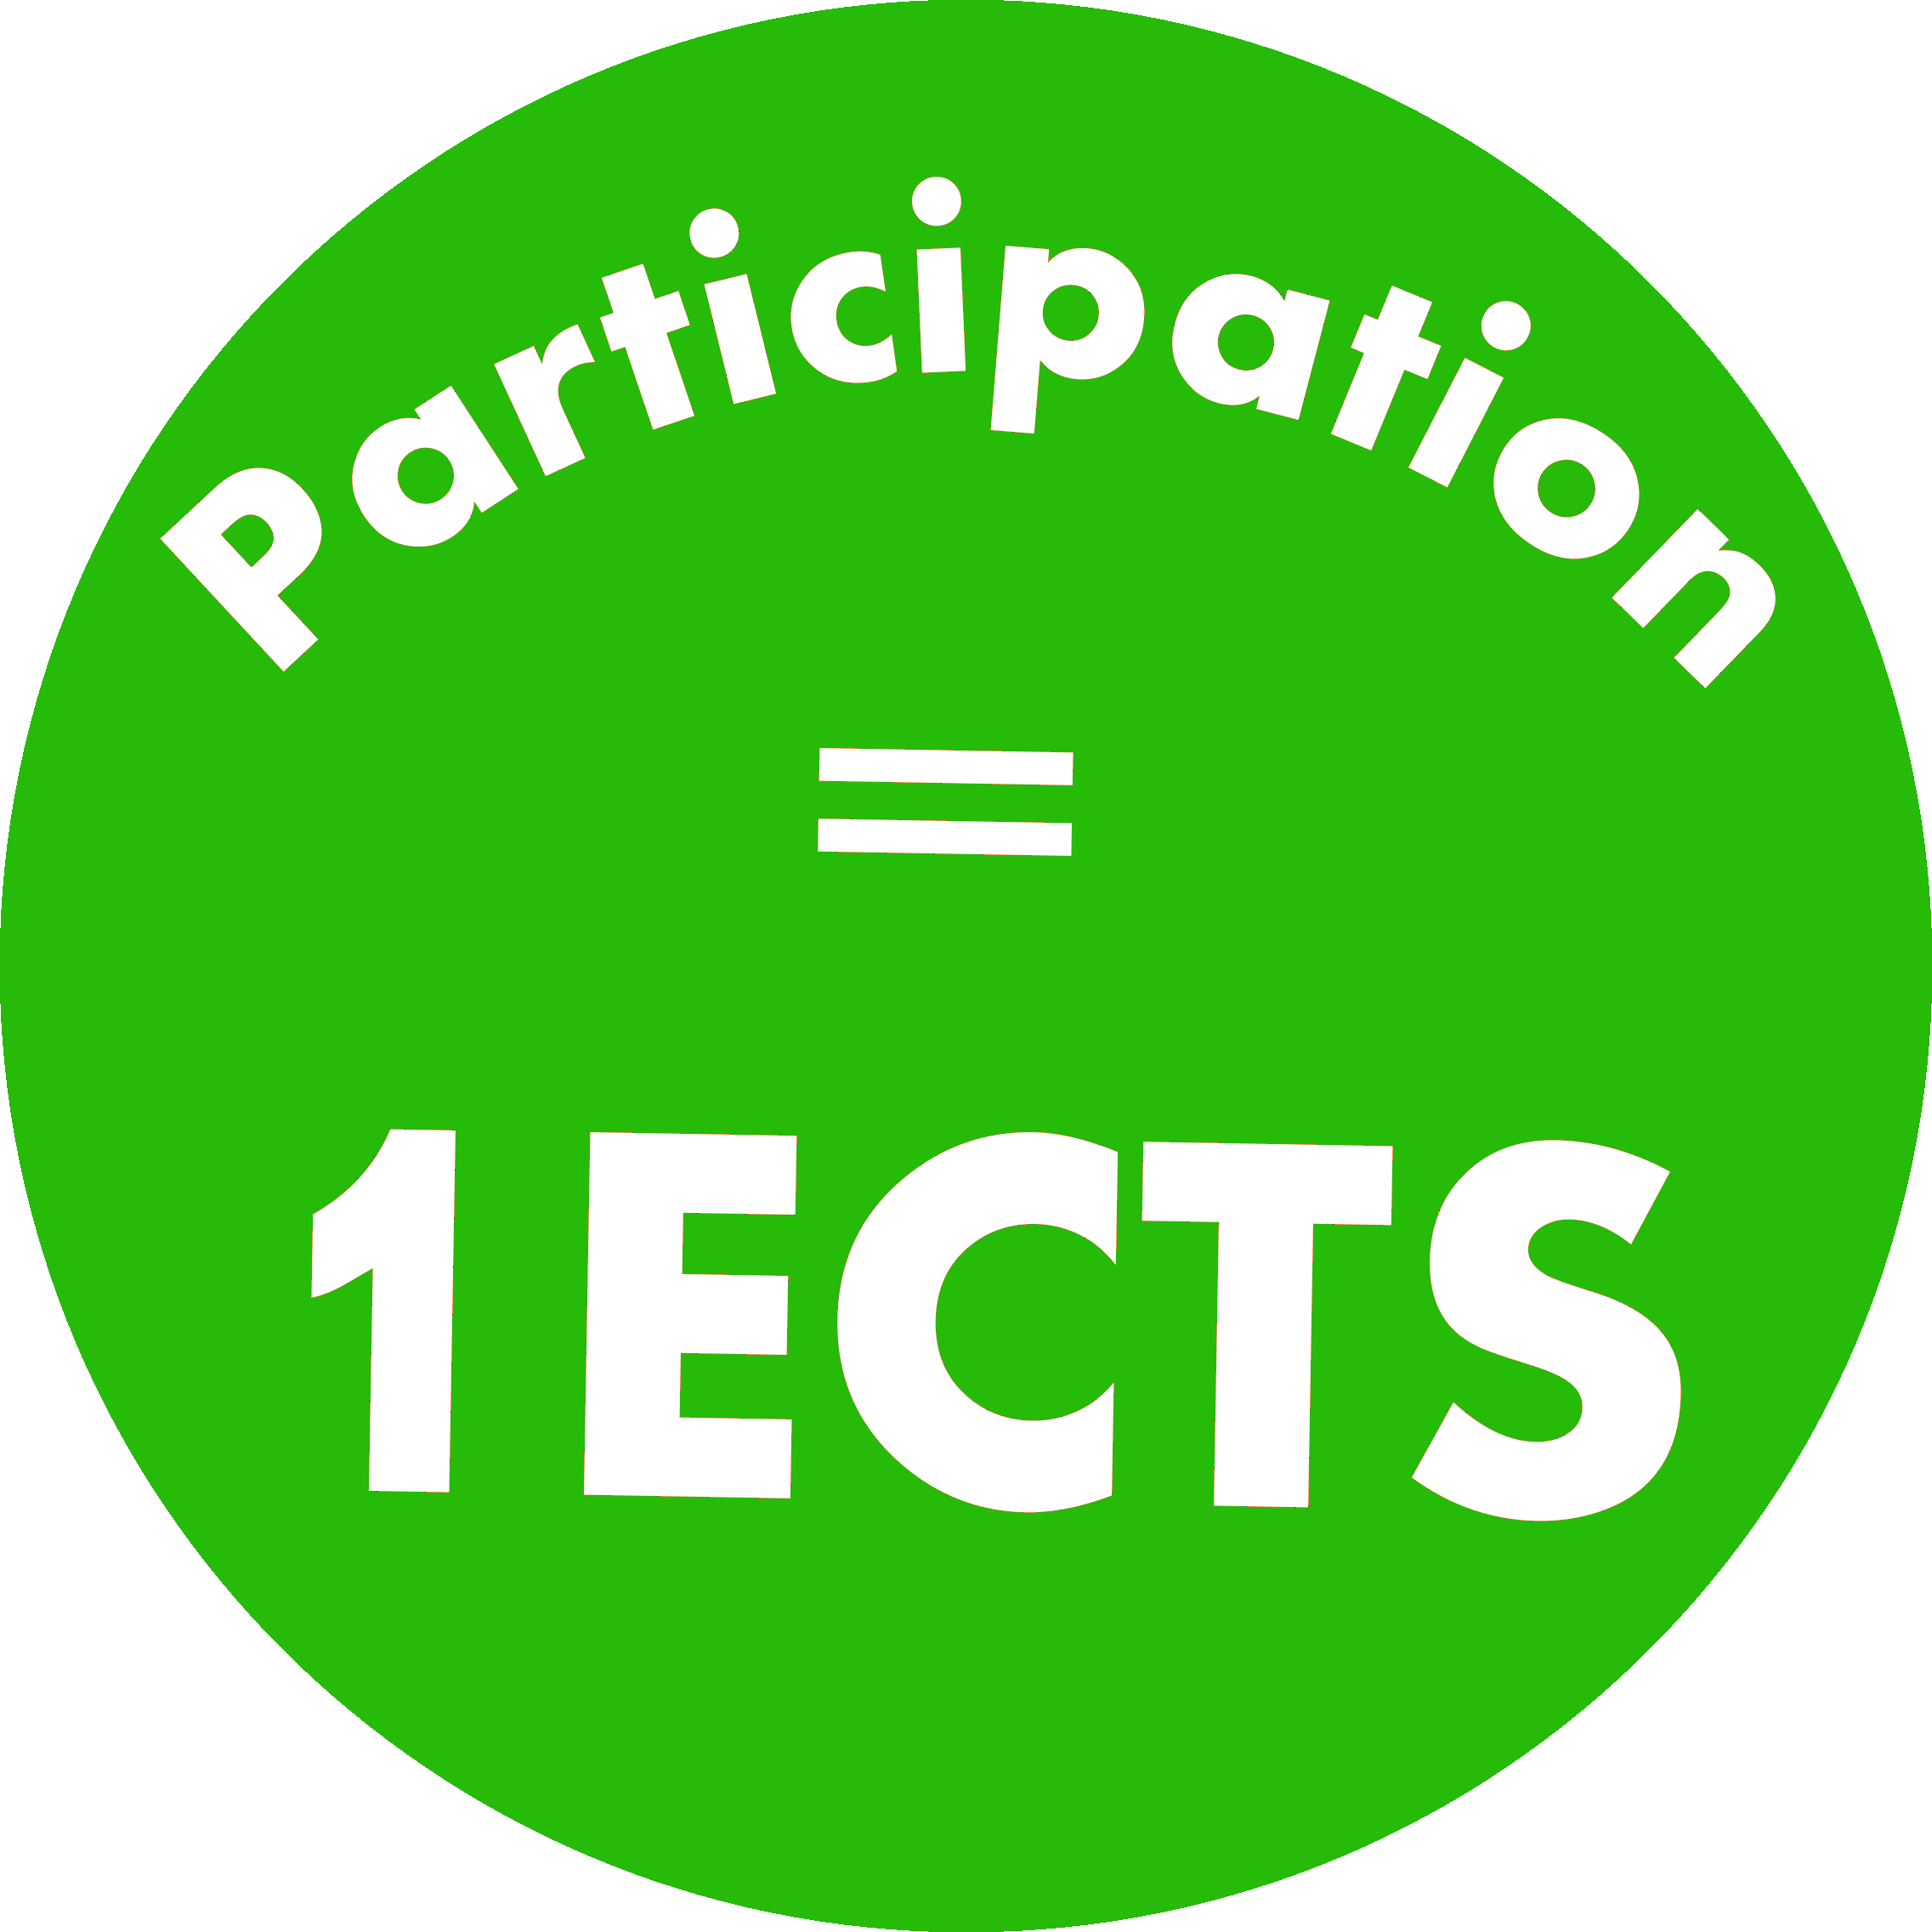 1 ECTS for Participation